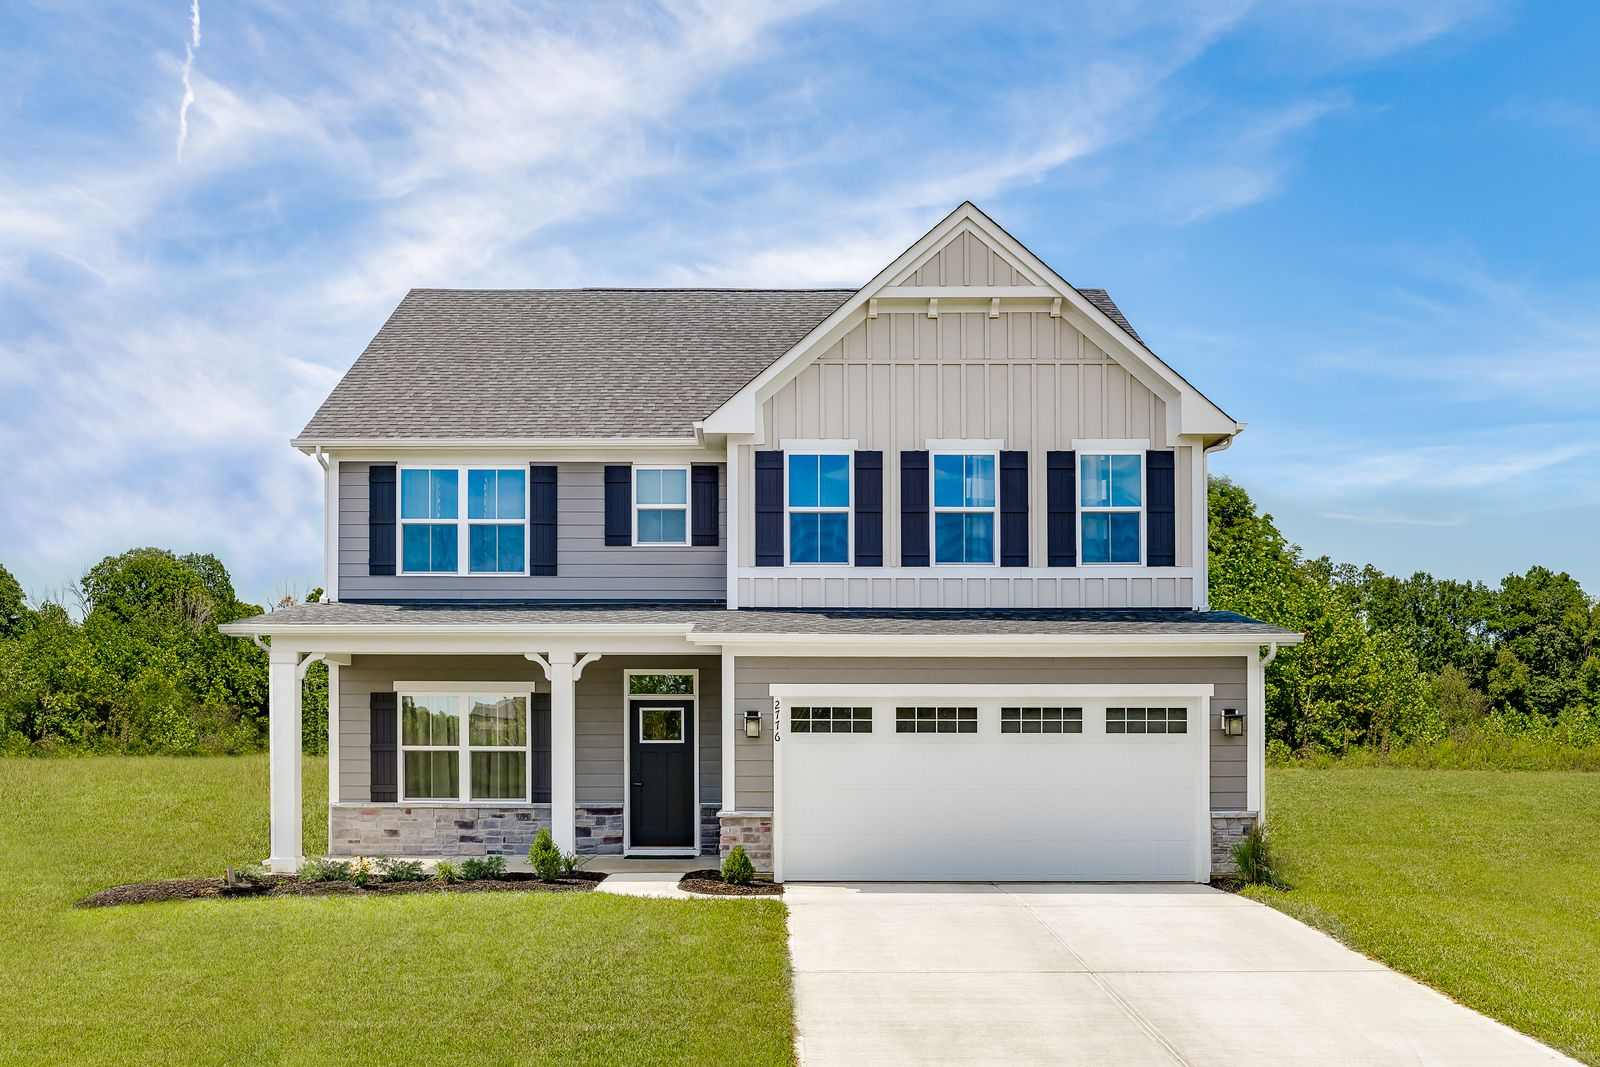 Homecoming at University Park is Now Open for Appointments!:The final section at Homecoming is now OPEN!Click here to learn more about our new homes with first floor bed options and the best homesites in the community with wooded and tree-lined views.